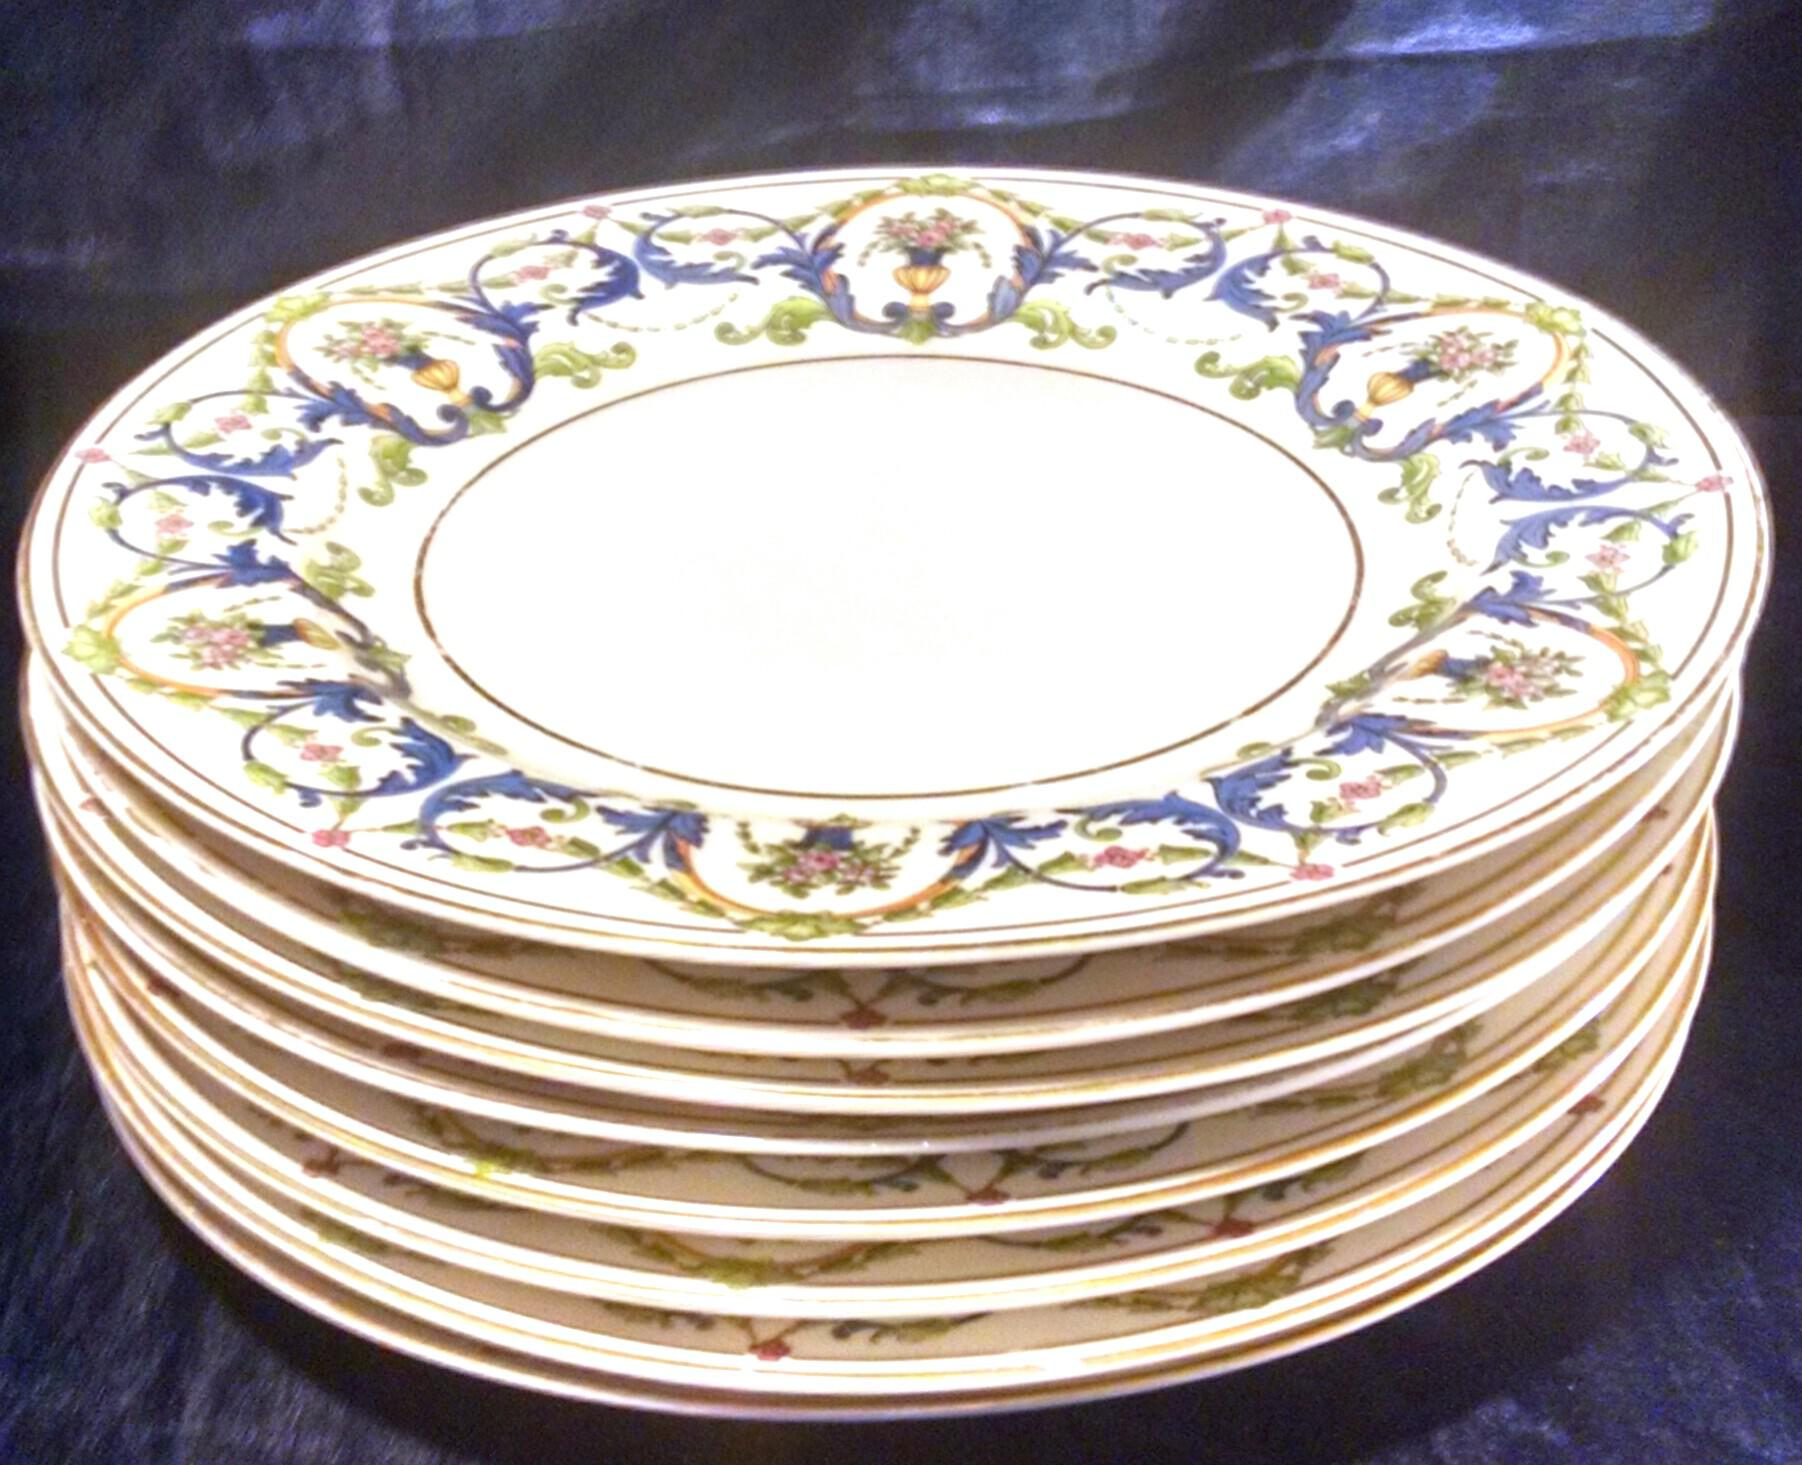 Rosenthal Selb Bavaria Gold Trim Dinner Plates - Set of 8 - Image 3 of 9  sc 1 st  Chairish & Rosenthal Selb Bavaria Gold Trim Dinner Plates - Set of 8 | Chairish